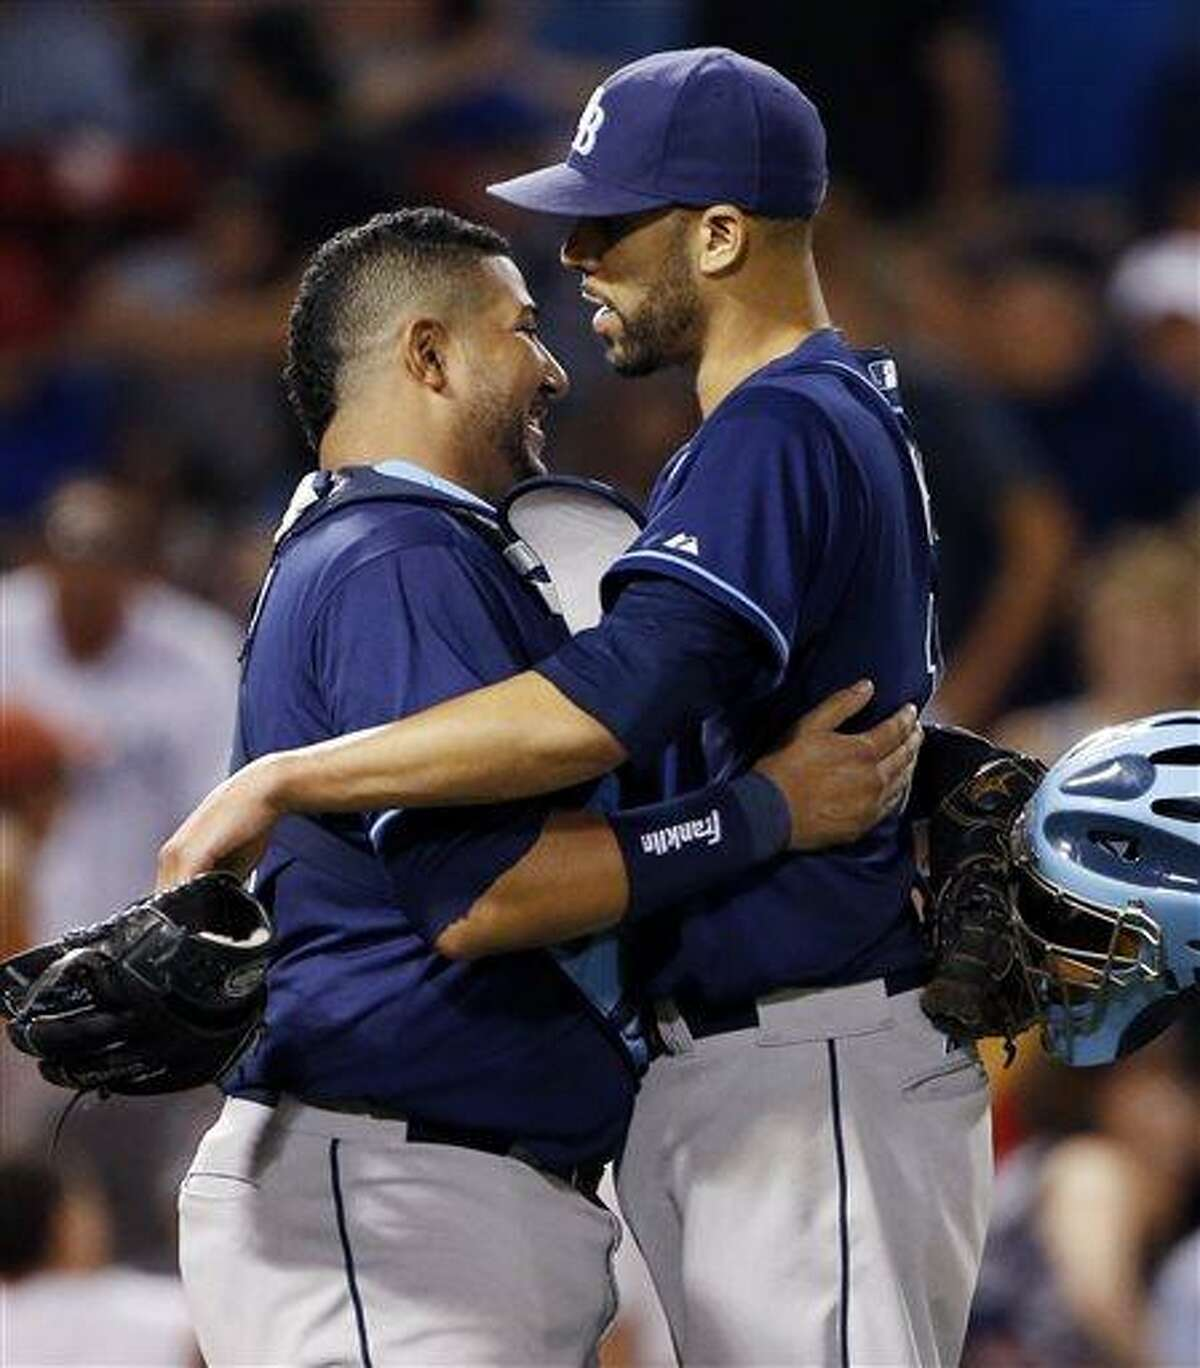 Tampa Bay Rays starting pitcher David Price, right, celebrates with catcher Jose Molina after throwing a five-hitter against the Boston Red Sox in a baseball game at Fenway Park in Boston Wednesday, July 24, 2013. The Rays won 5-1. (AP Photo/Elise Amendola)